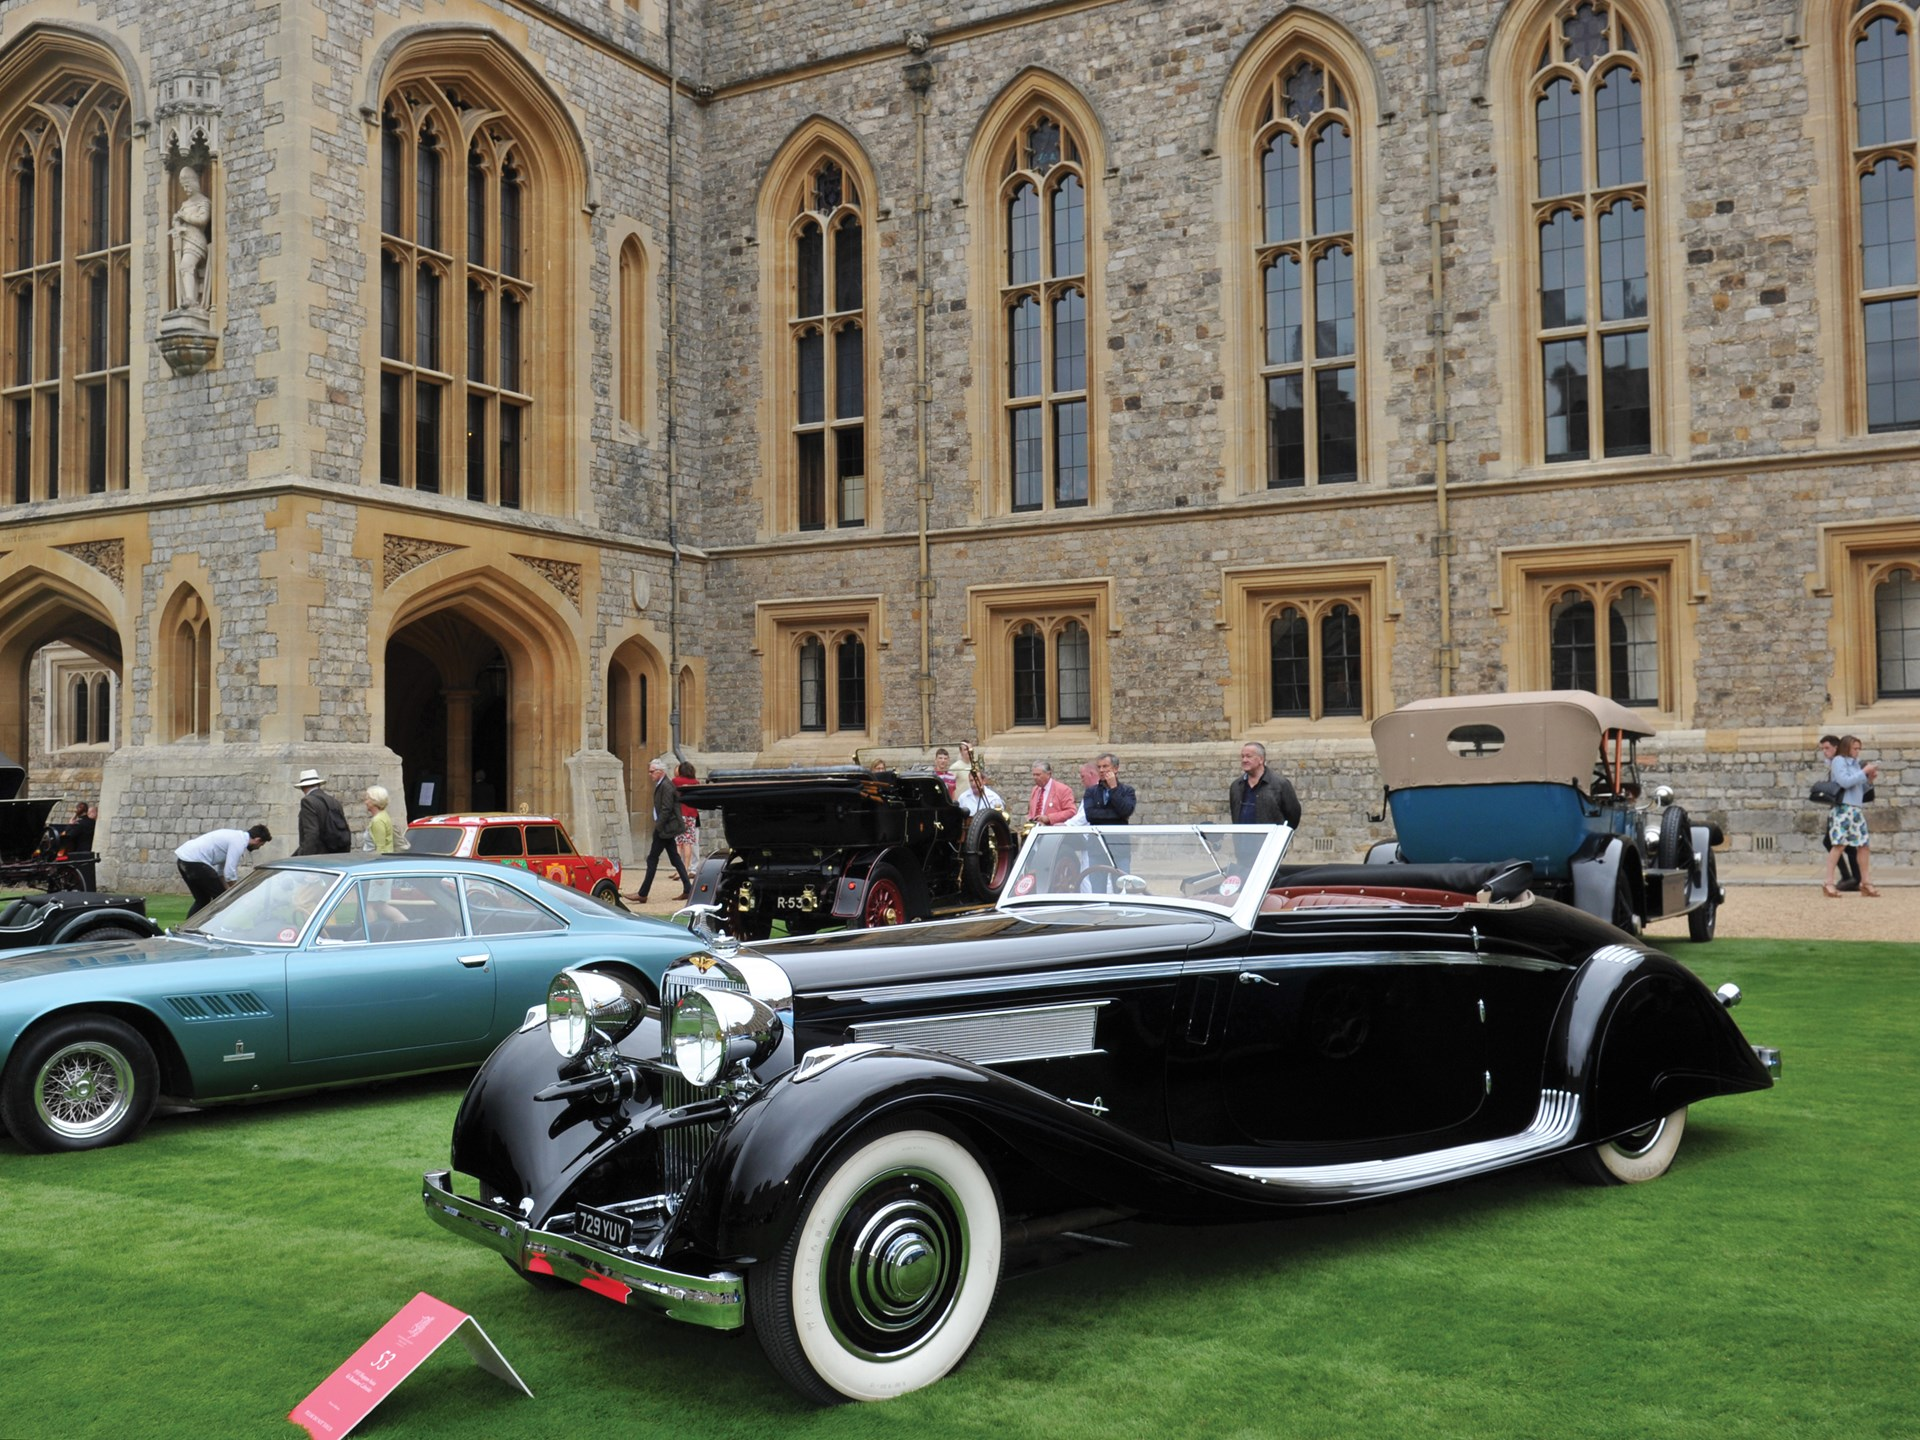 The Hispano-Suiza on display at the 2016 Concours of Elegance at Windsor Castle.